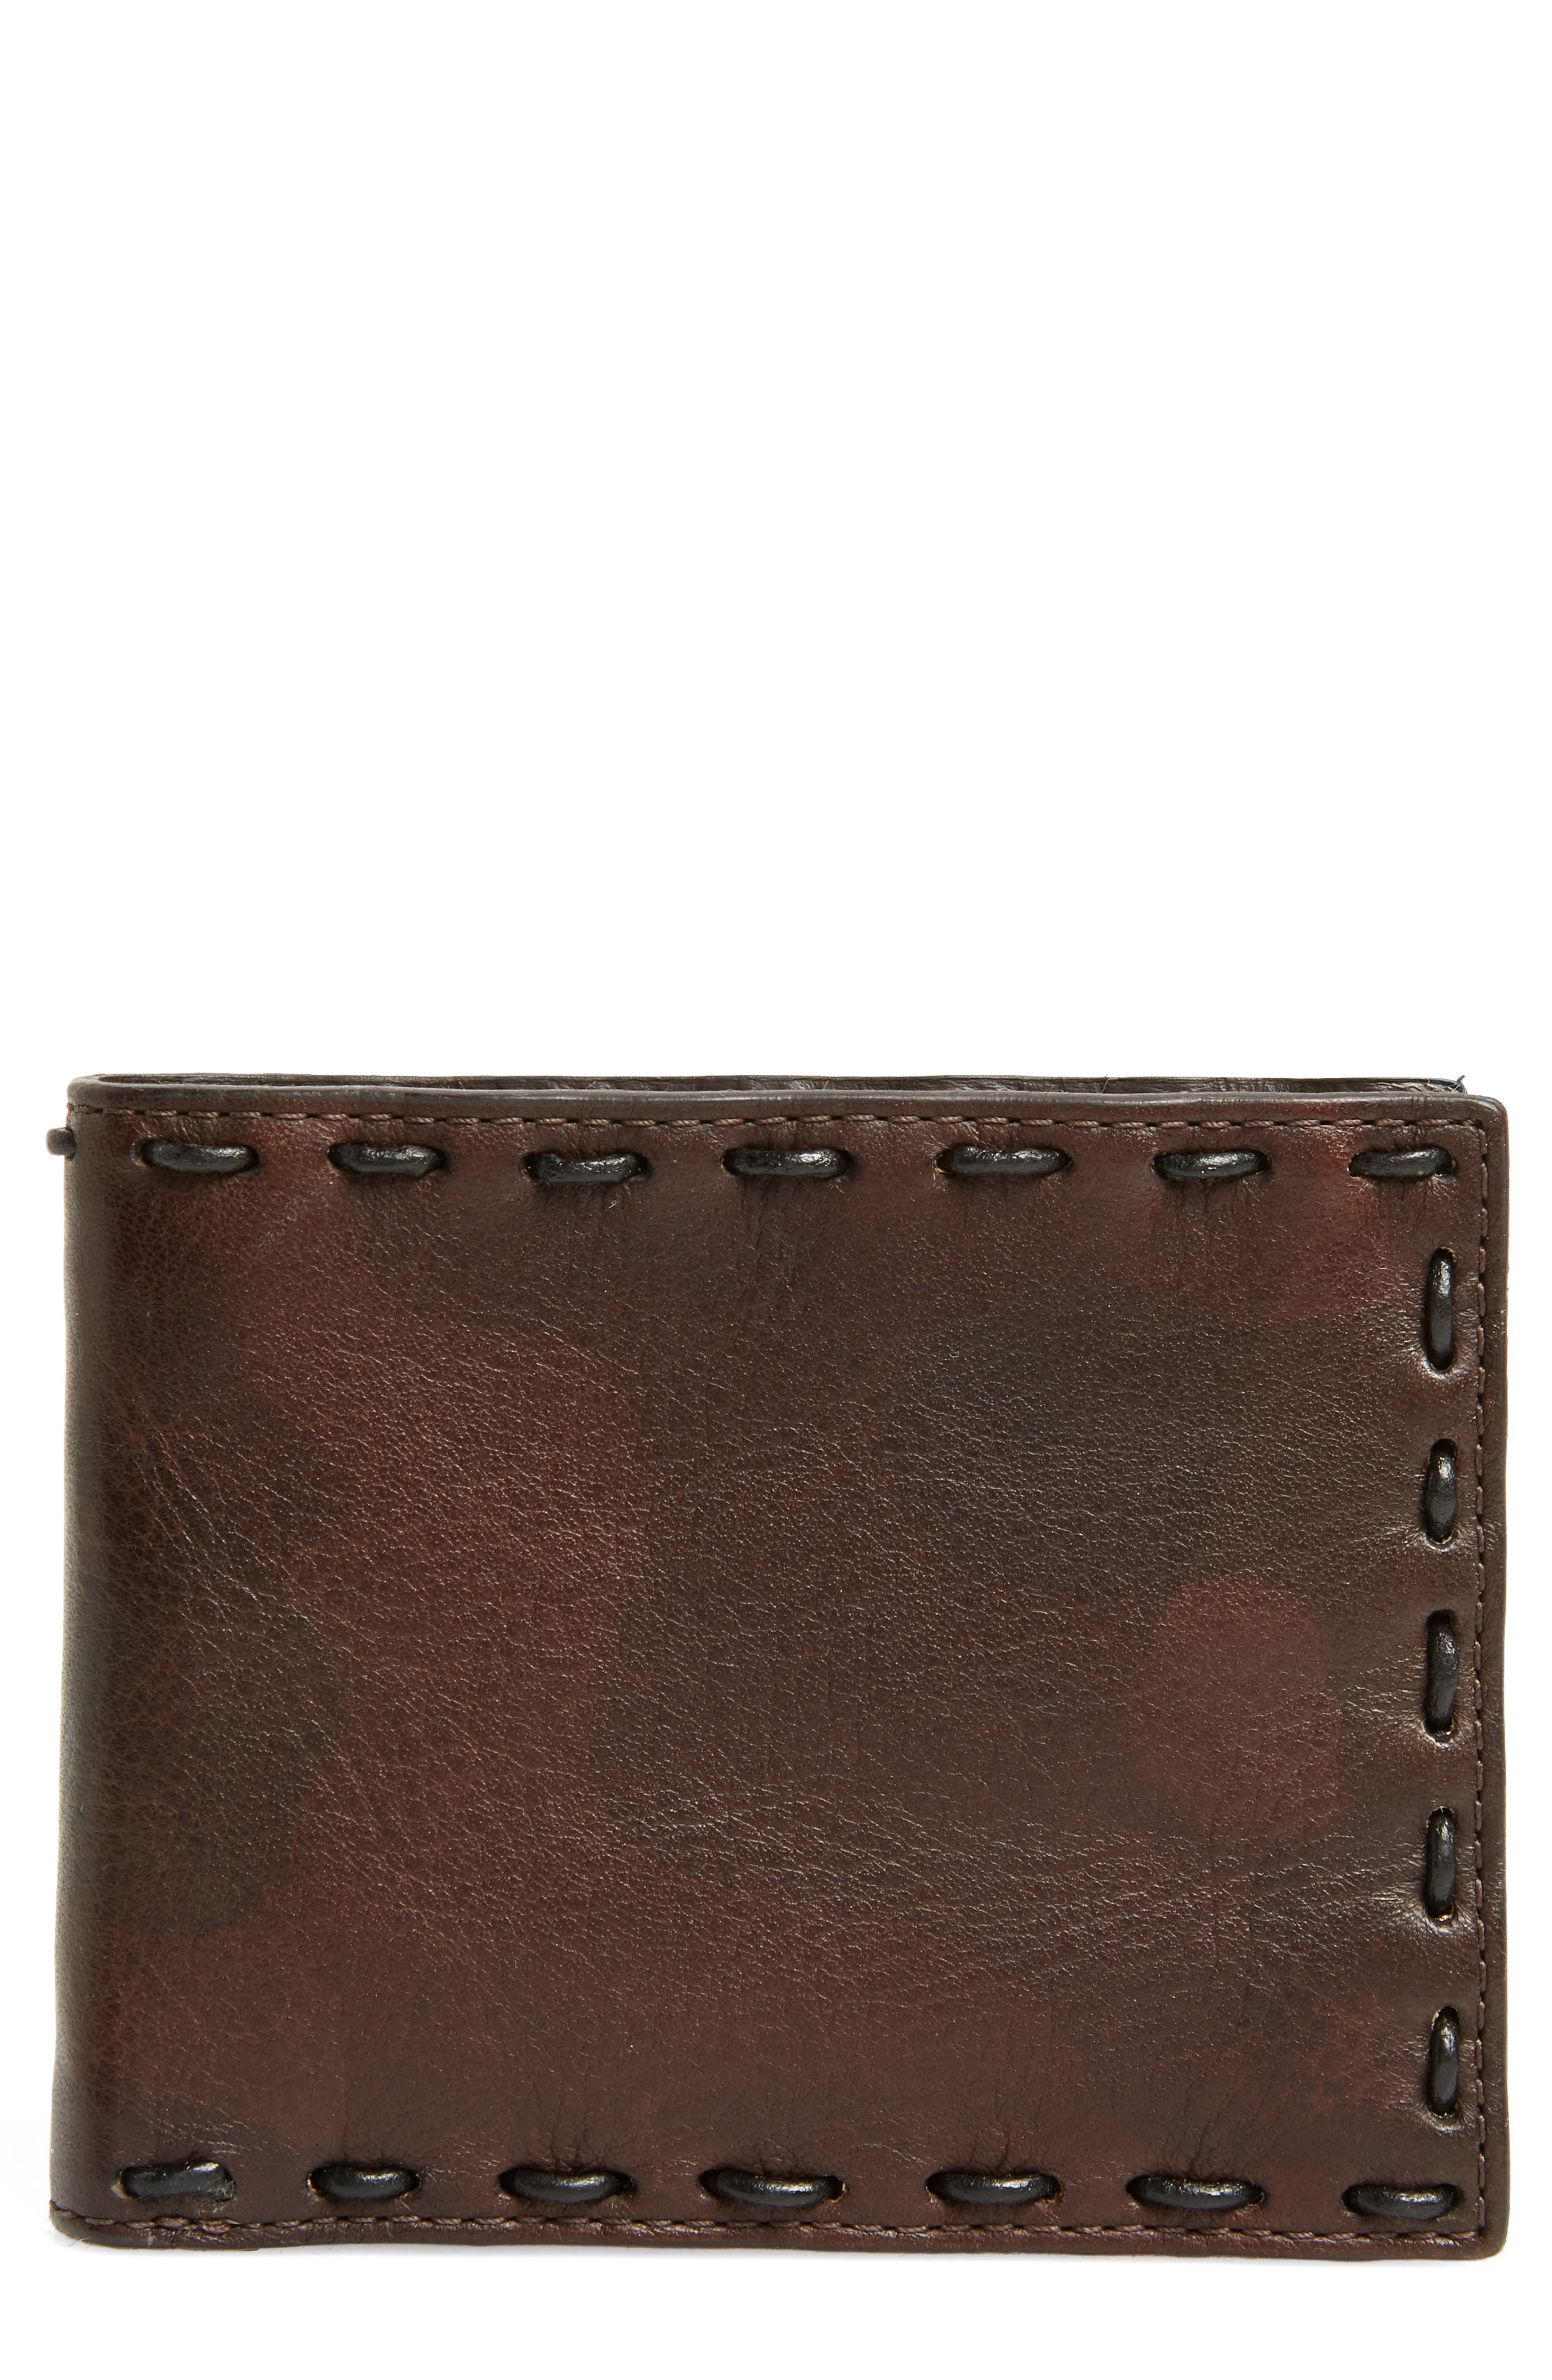 Marble Pickstitched Leather Wallet,                         Main,                         color, Distressed Brown